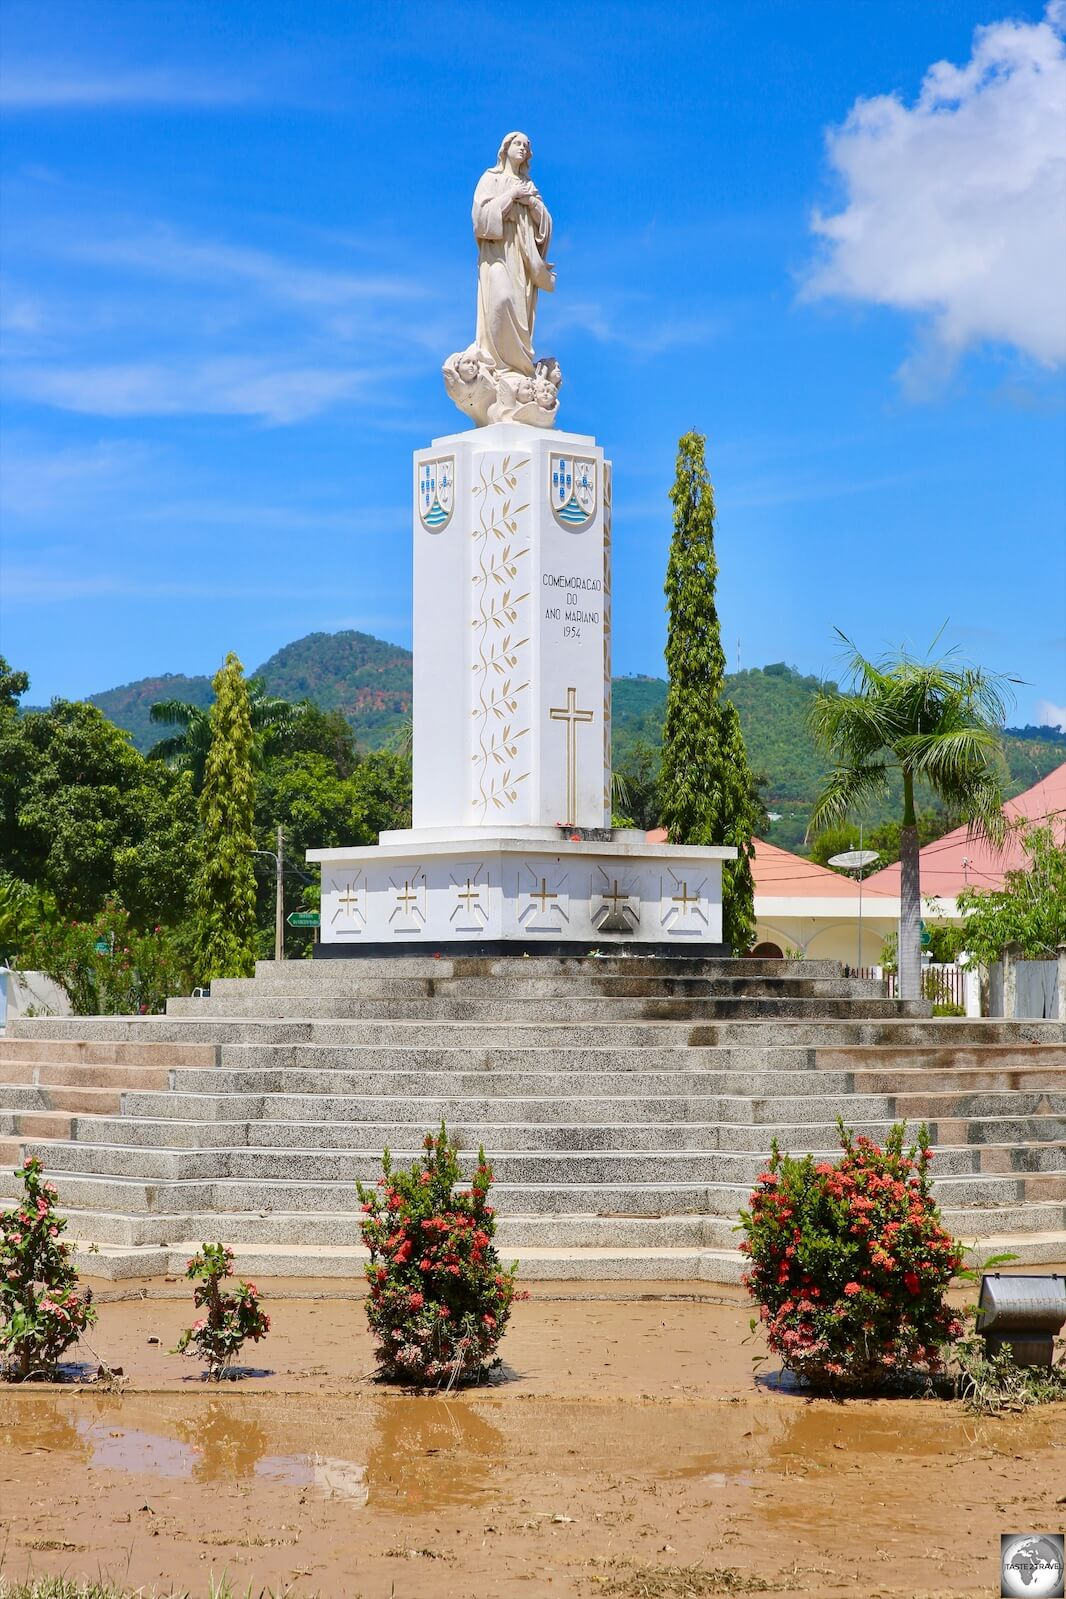 The Monument to Our Lady in Fatima Park is surrounded by a slurry of mud which washed down from the mountains during a flash flood the day before. The mud covered the entire city.